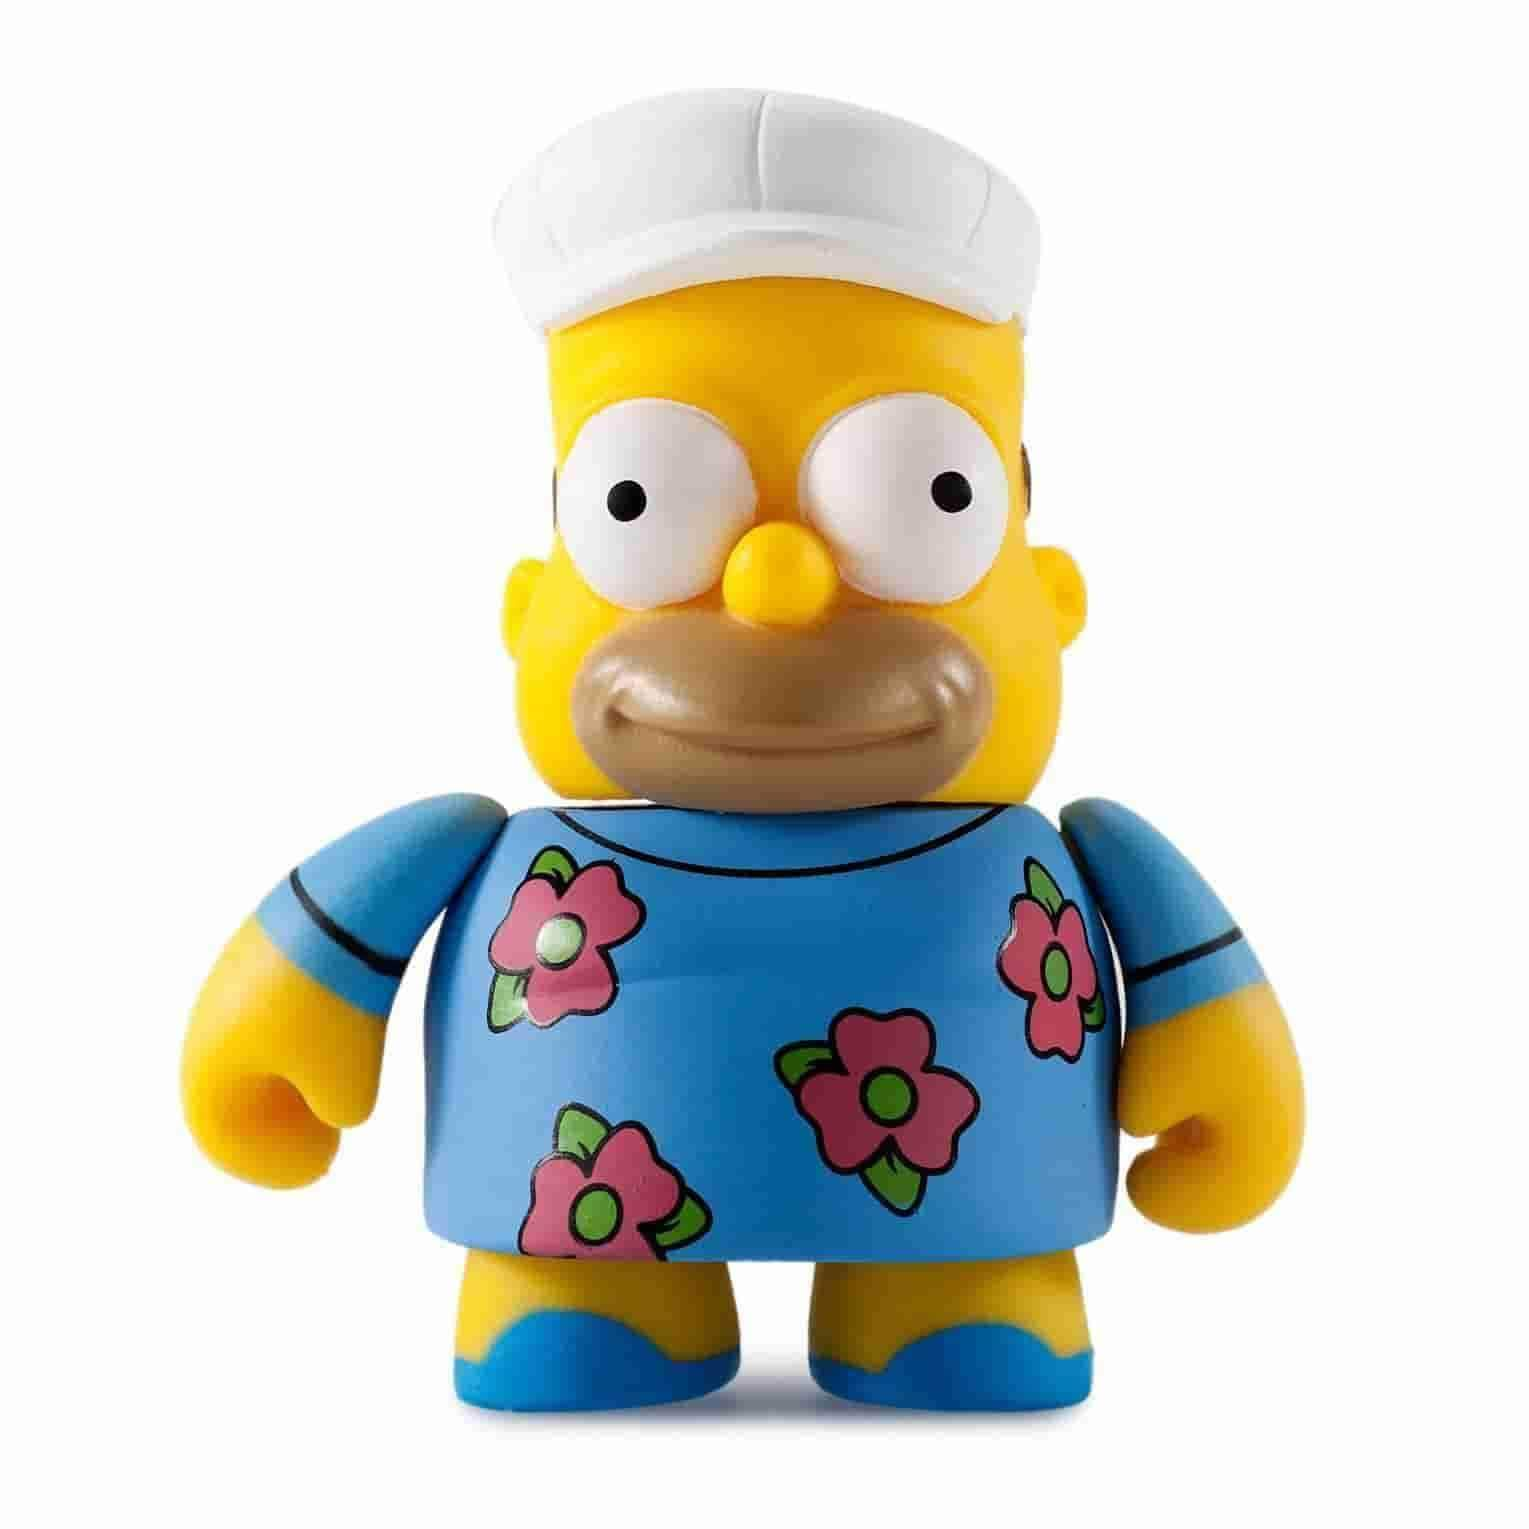 Fat Hat Homer Simpsons 25th Anniversary Vinyl Mini Series by Kidrobot - IamRetro